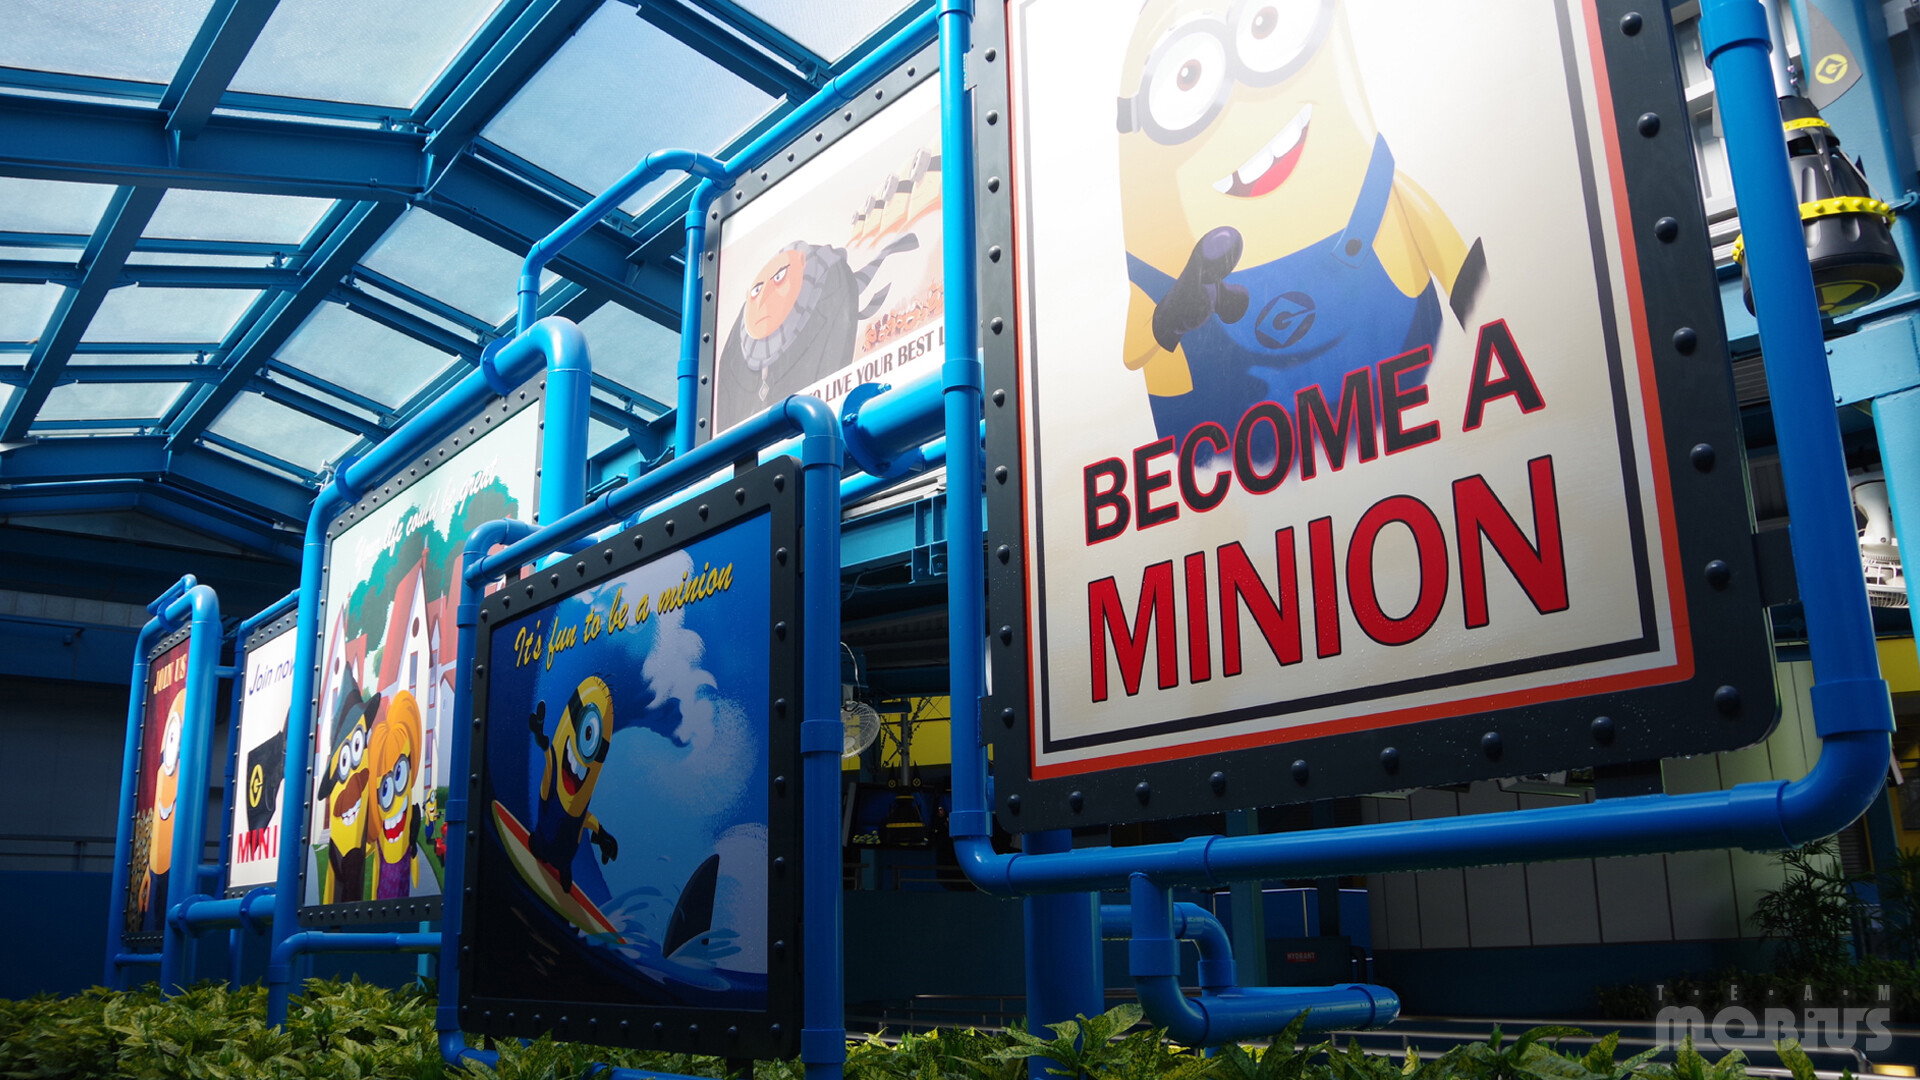 Production image of Minion Mayhem queue experience